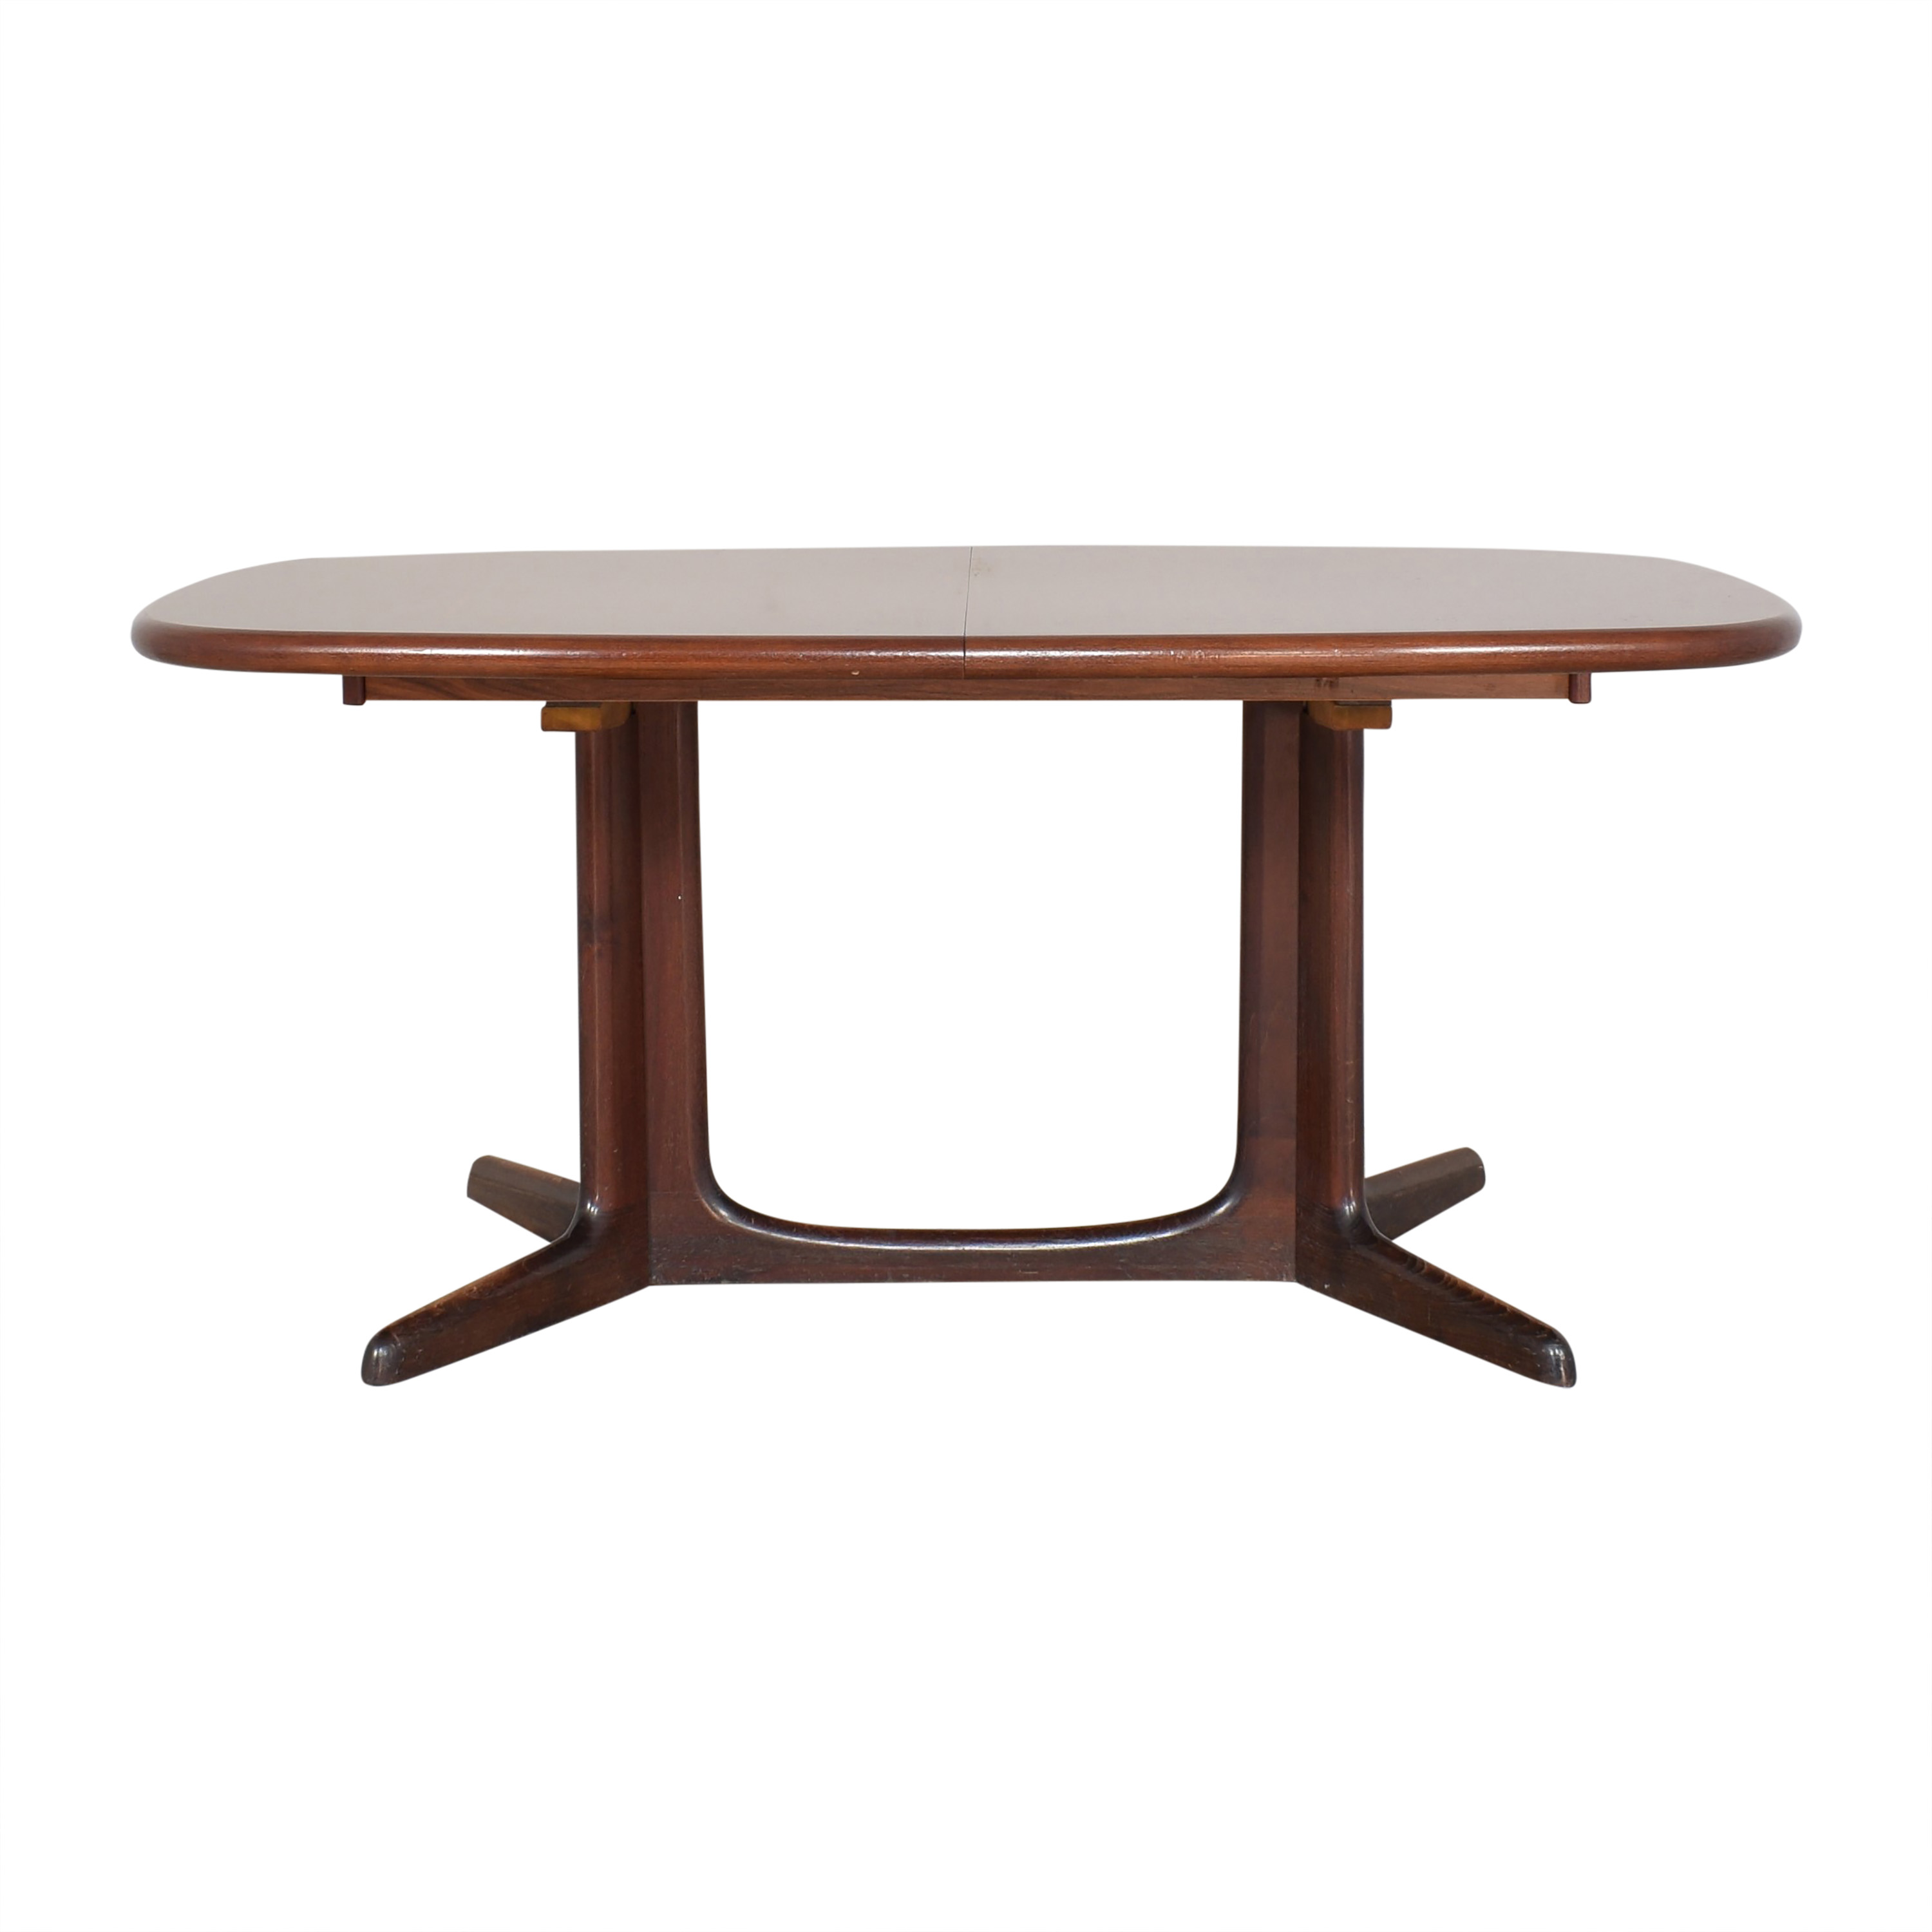 Danish-Style Extendable Dining Table Dinner Tables